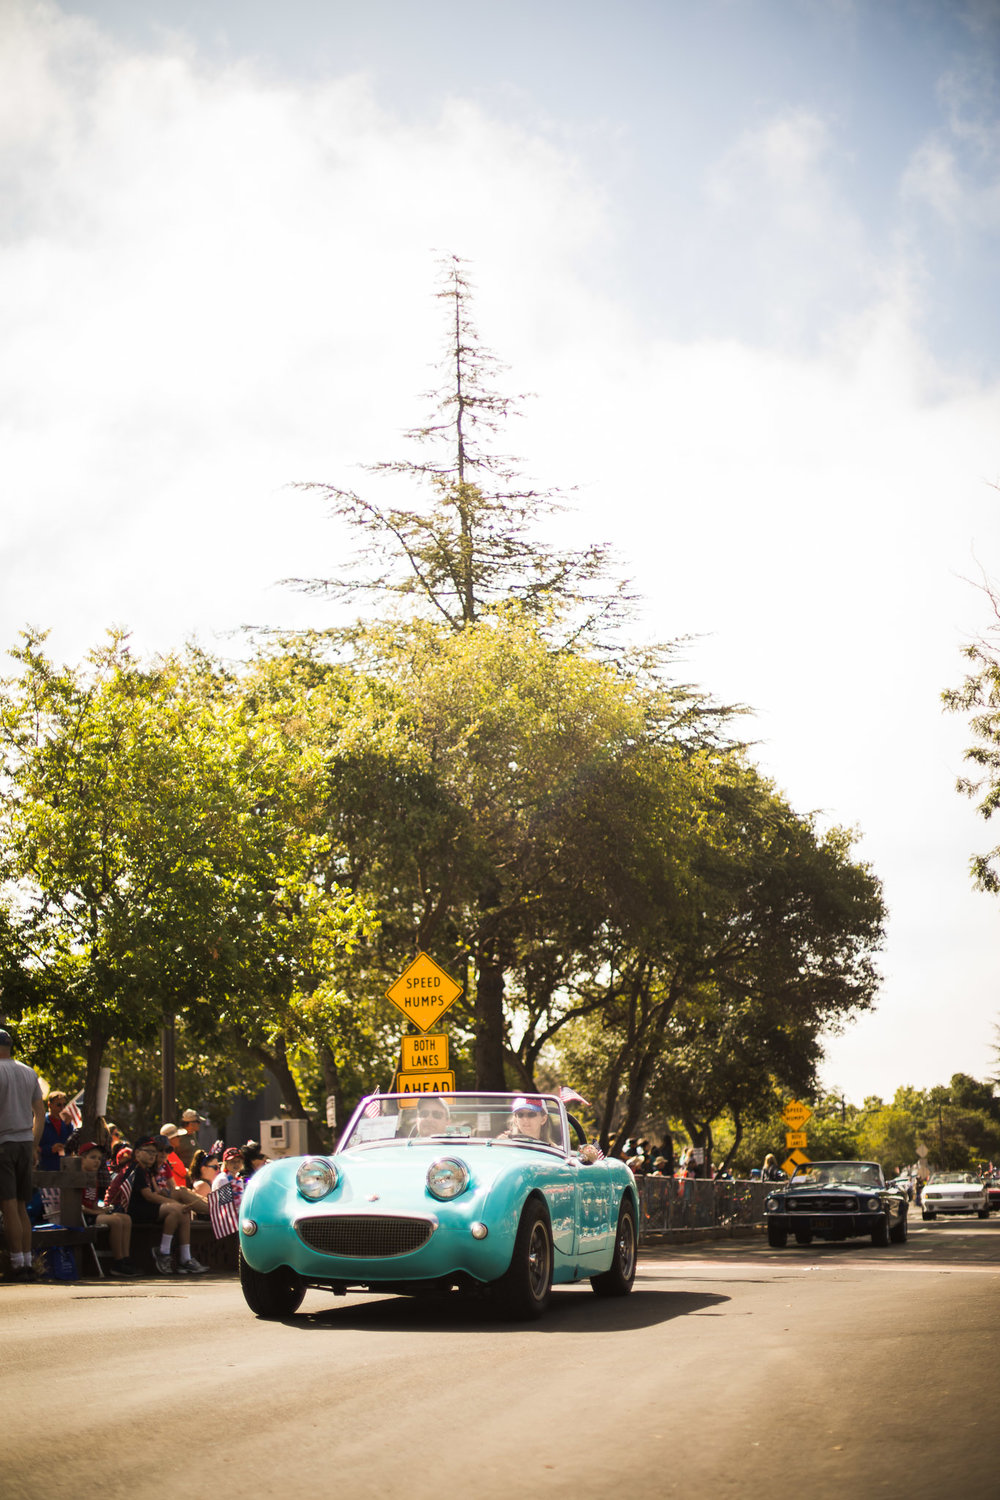 Archer_Inspired_Photography_Morgan_Hill_California_4th_of_july_parade-21.jpg